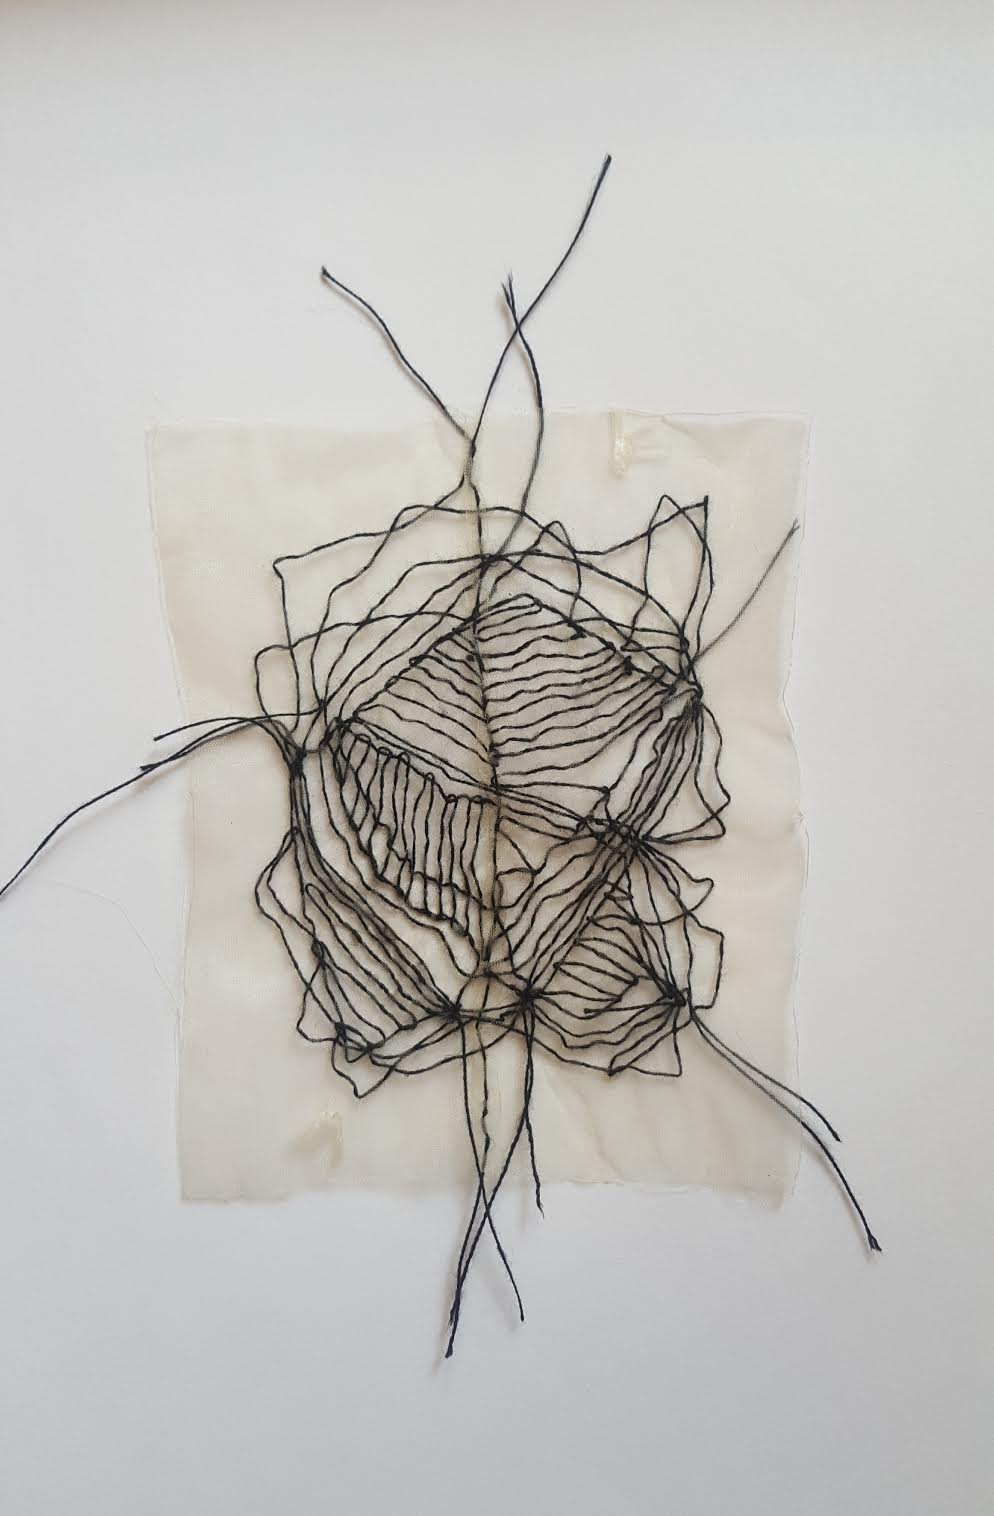 Huda Lutfi, Meandering of a Black Thread, 2020, 11 x 13 cm.